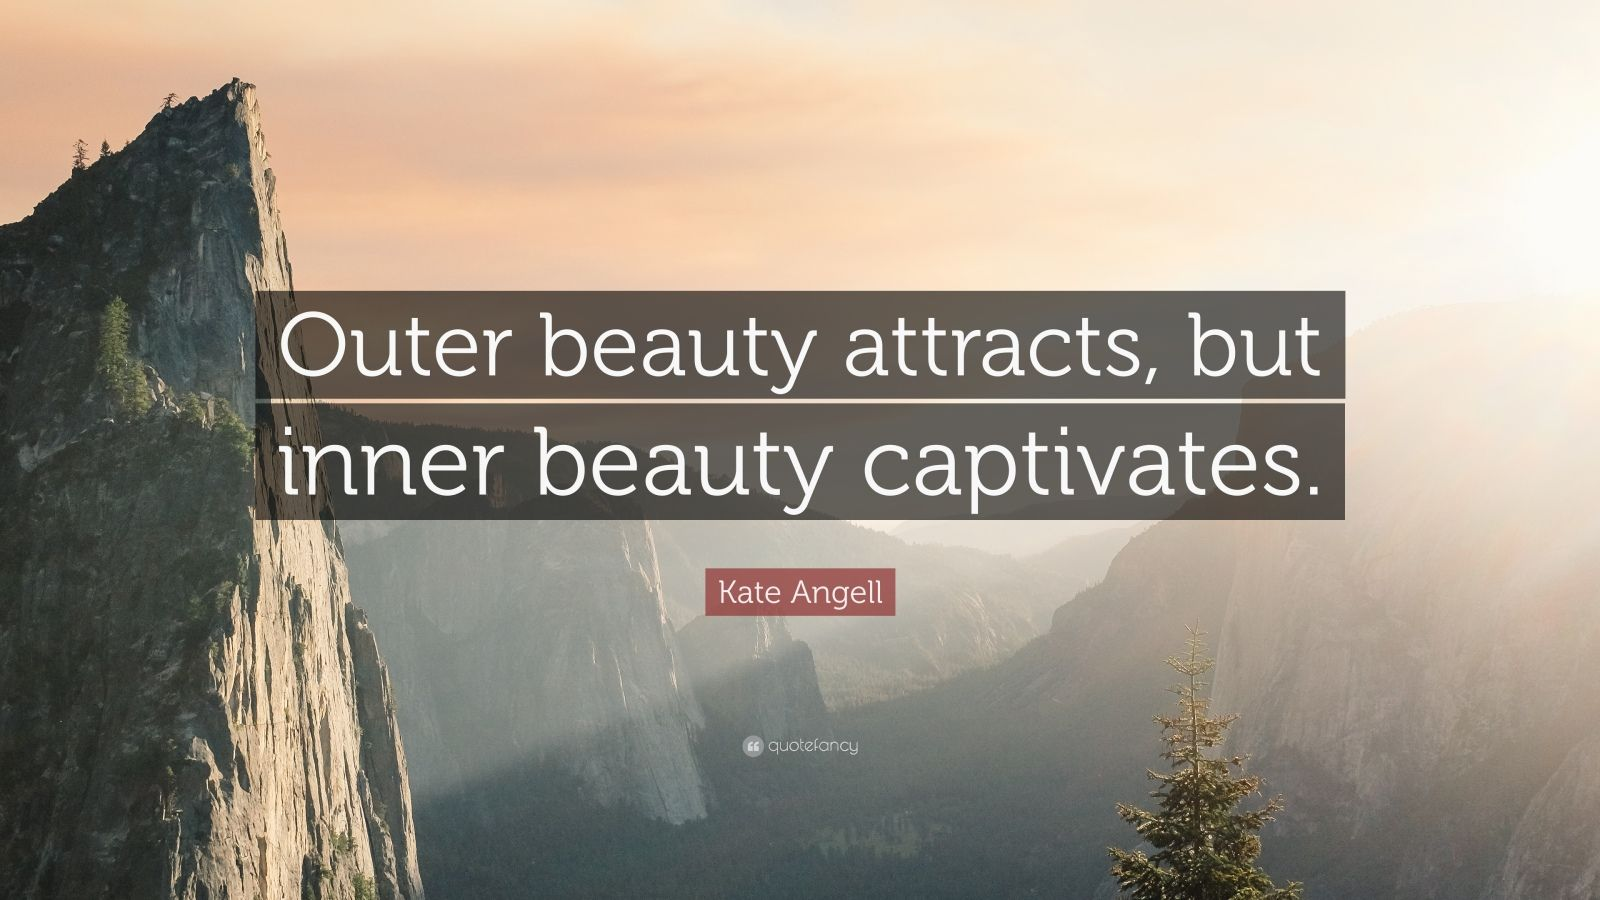 inner beauty speech That is where certain ideas originate, such as beauty is as beauty does, or beauty comes from within some people are captivated by inner strength of character as a result, they may perceive someone to have a beautiful soul.